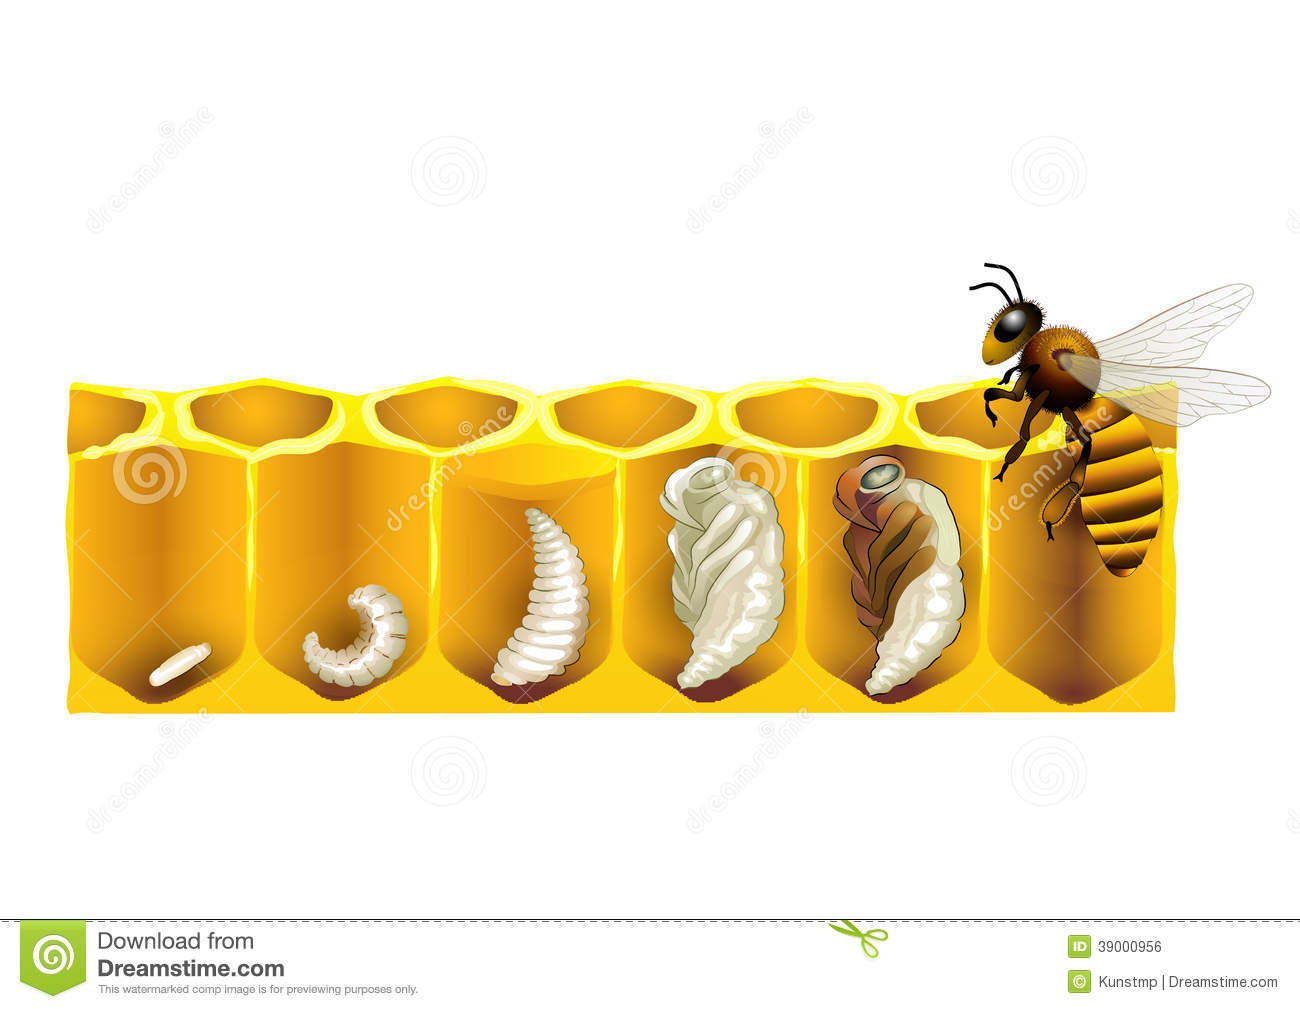 Tire Tracks Clipart besides Types Of Muscles 17796266 further Royalty Free Stock Photography Cute Furry Monster Image26872807 together with The Basic Principles Of Biology in addition Royalty Free Stock Photography Human Cell Diagrammatical Image2949267. on animal cell graphics